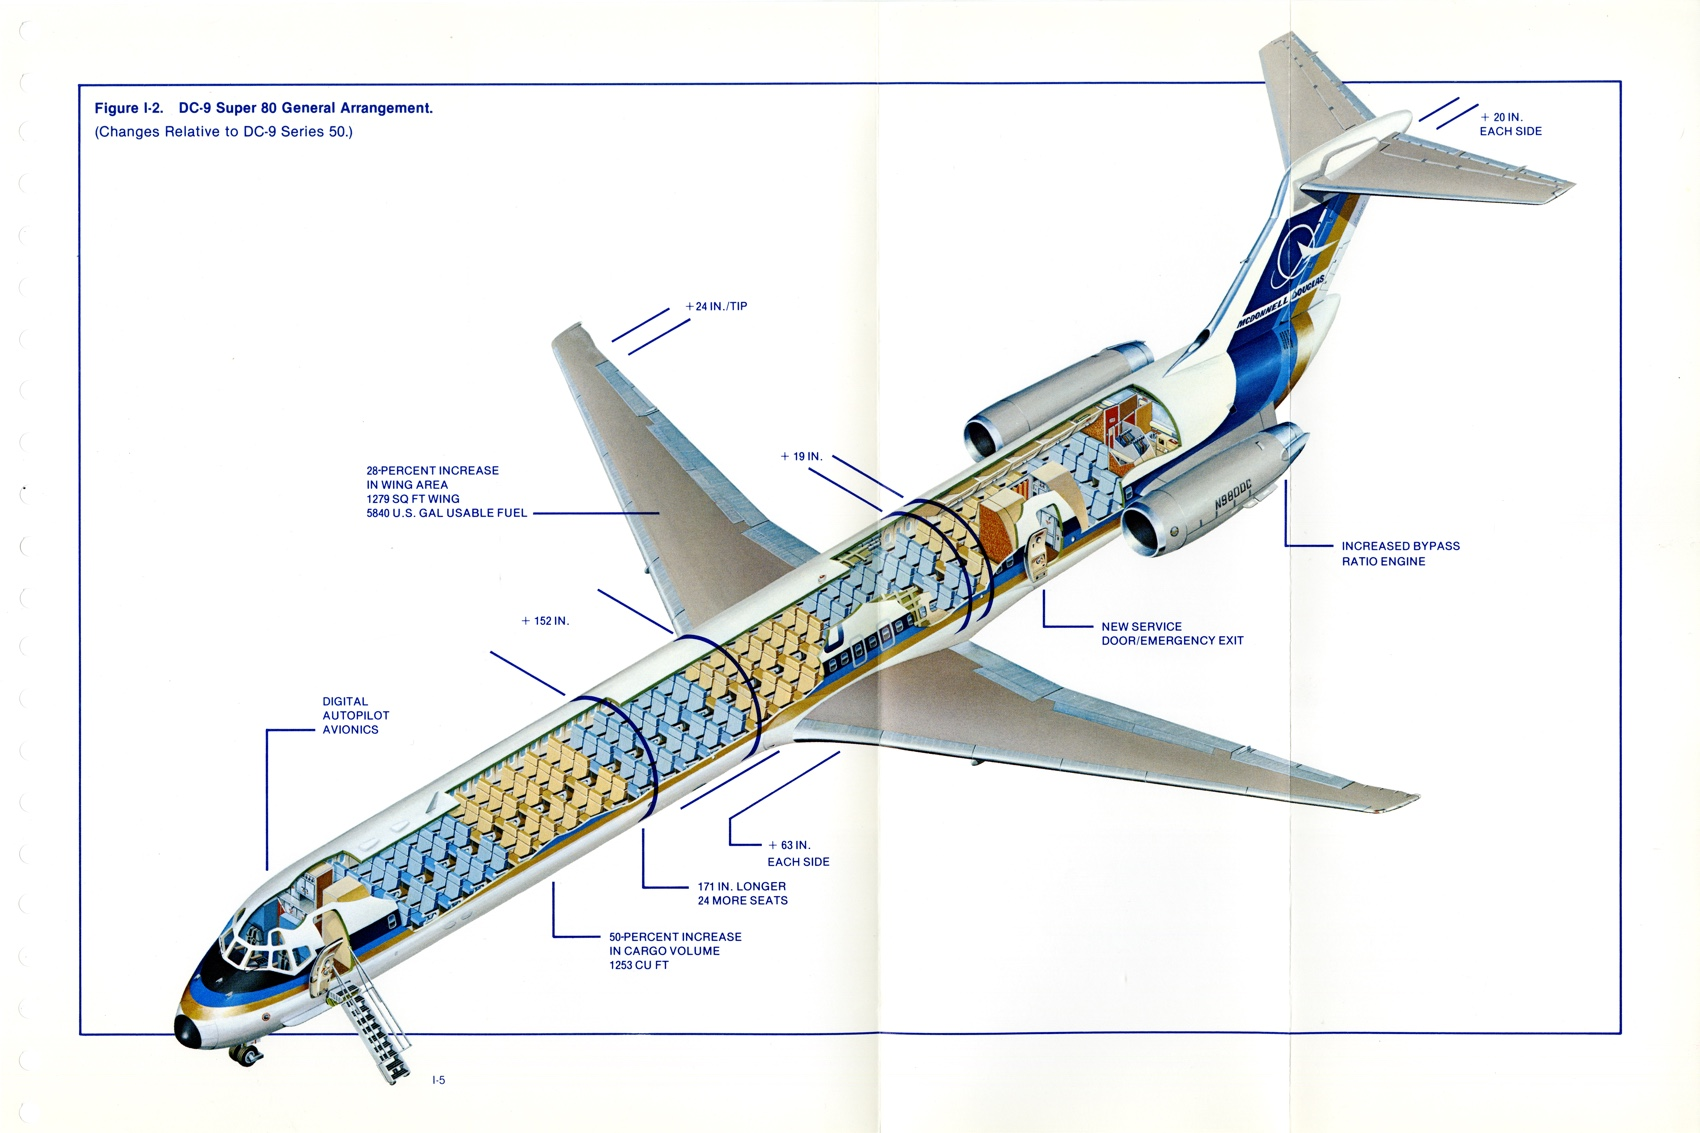 Cutaway view of DC-9 Super 80